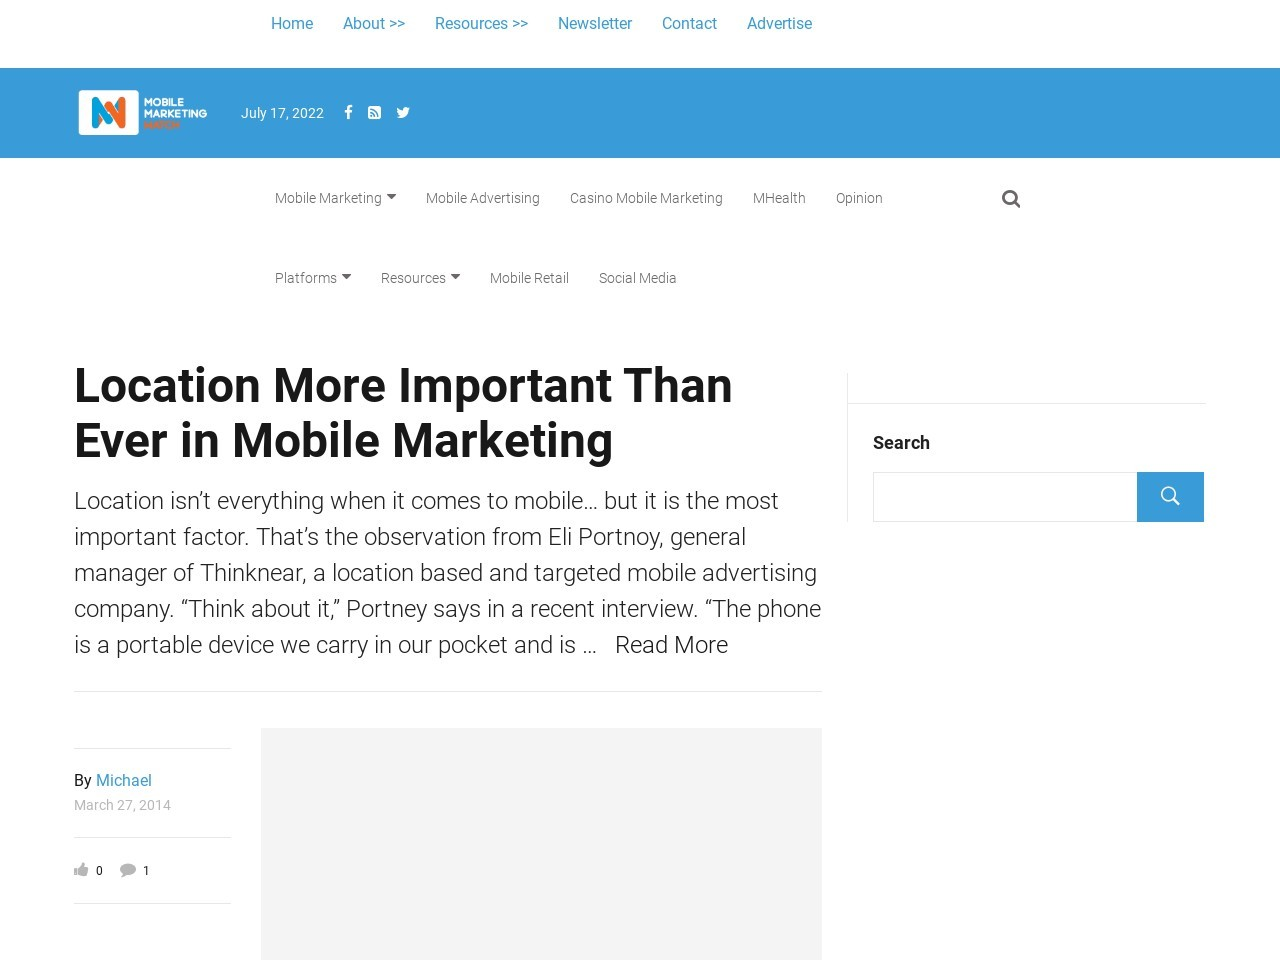 Location More Important Than Ever in Mobile Marketing